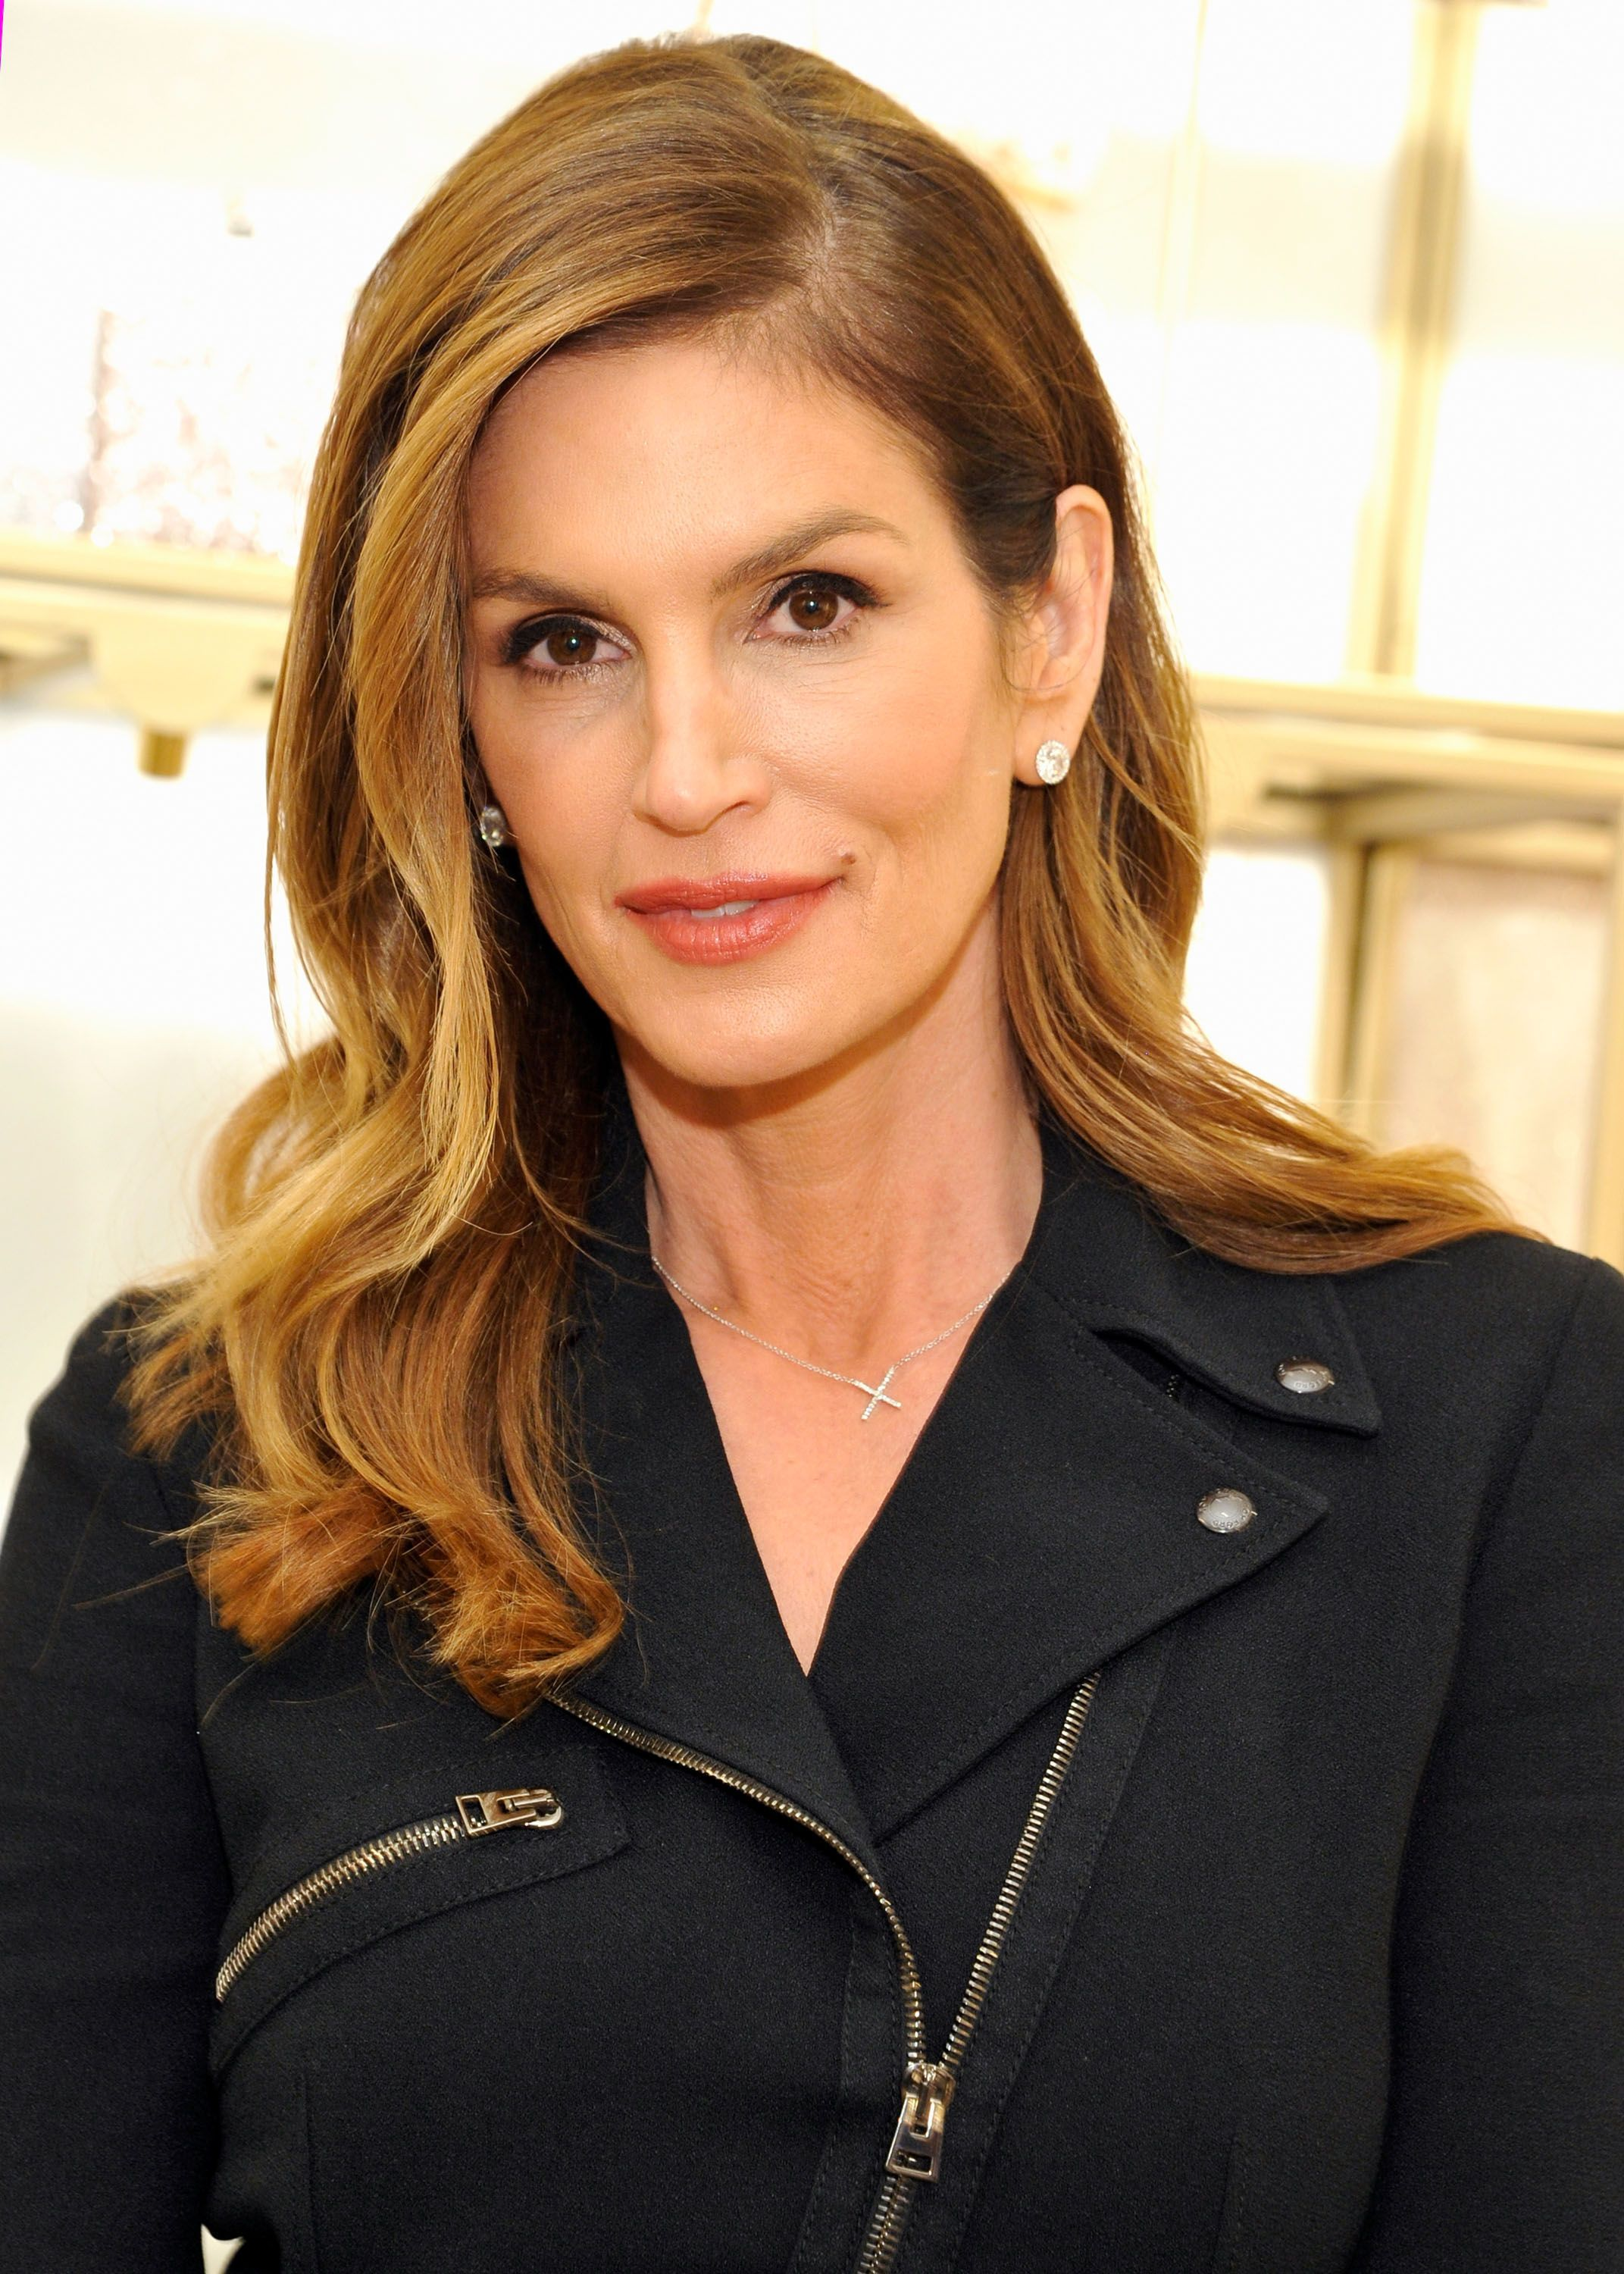 Cindy Crawford - An Evening To Support DKMS Hosted By Jimmy Choo And Cindy Crawford in Beverly Hills 11/3/16